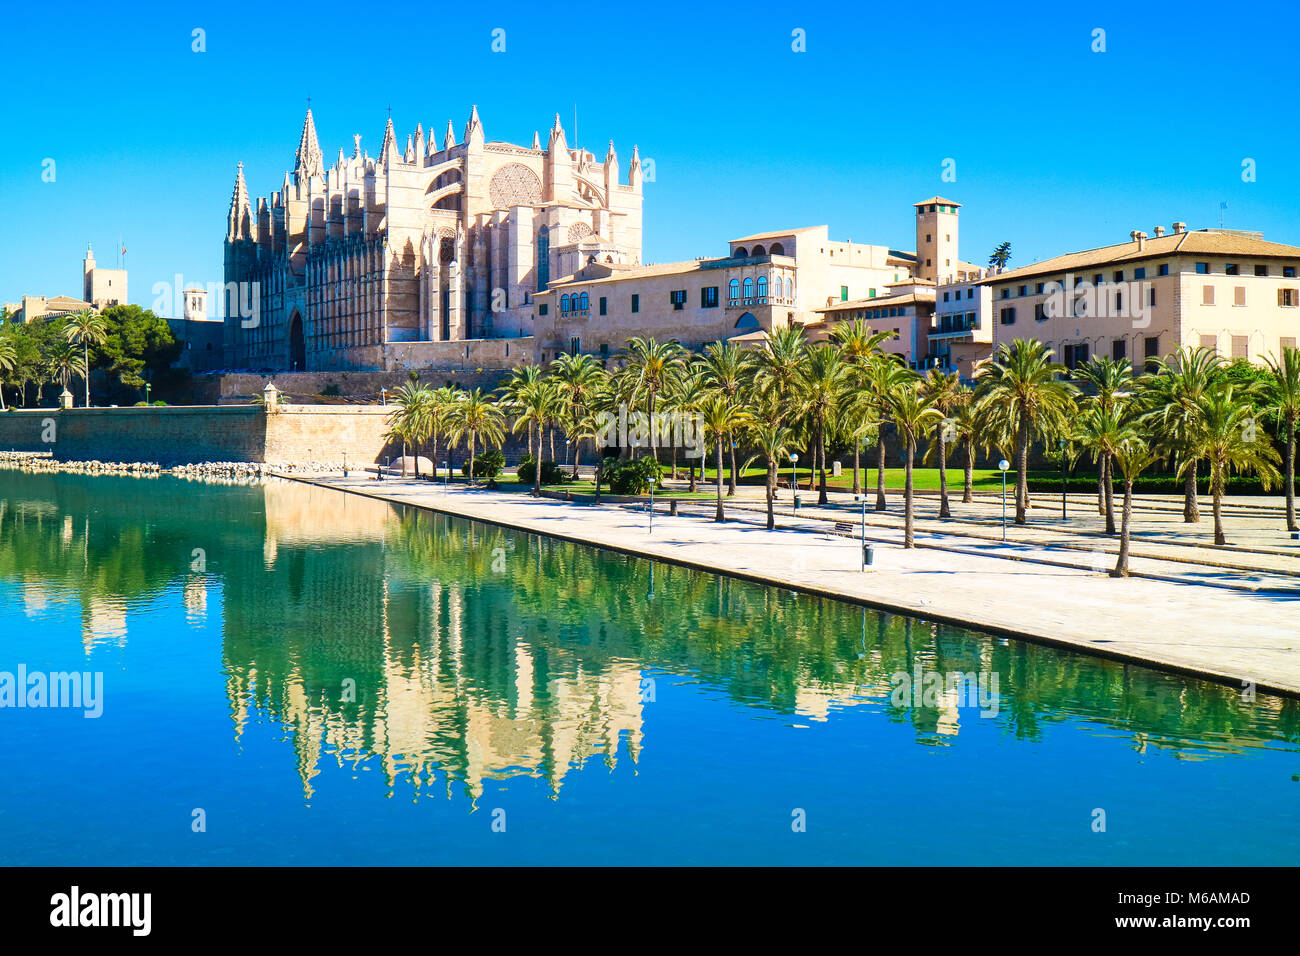 Palma de Mallorca, Spain. La Seu - the famous medieval gothic catholic cathedral in the capital of the island Stock Photo